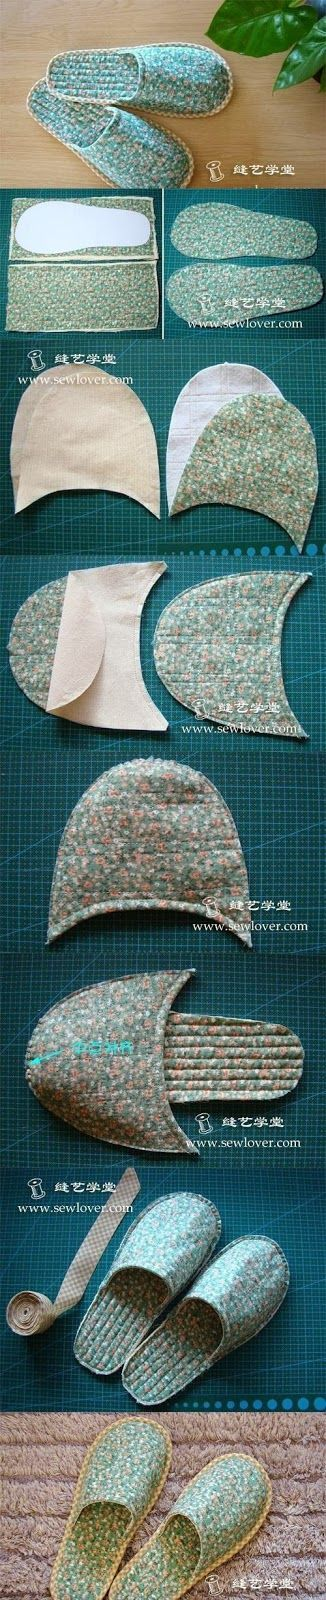 DIY : Sew Slipper | DIY & Crafts Tutorials: